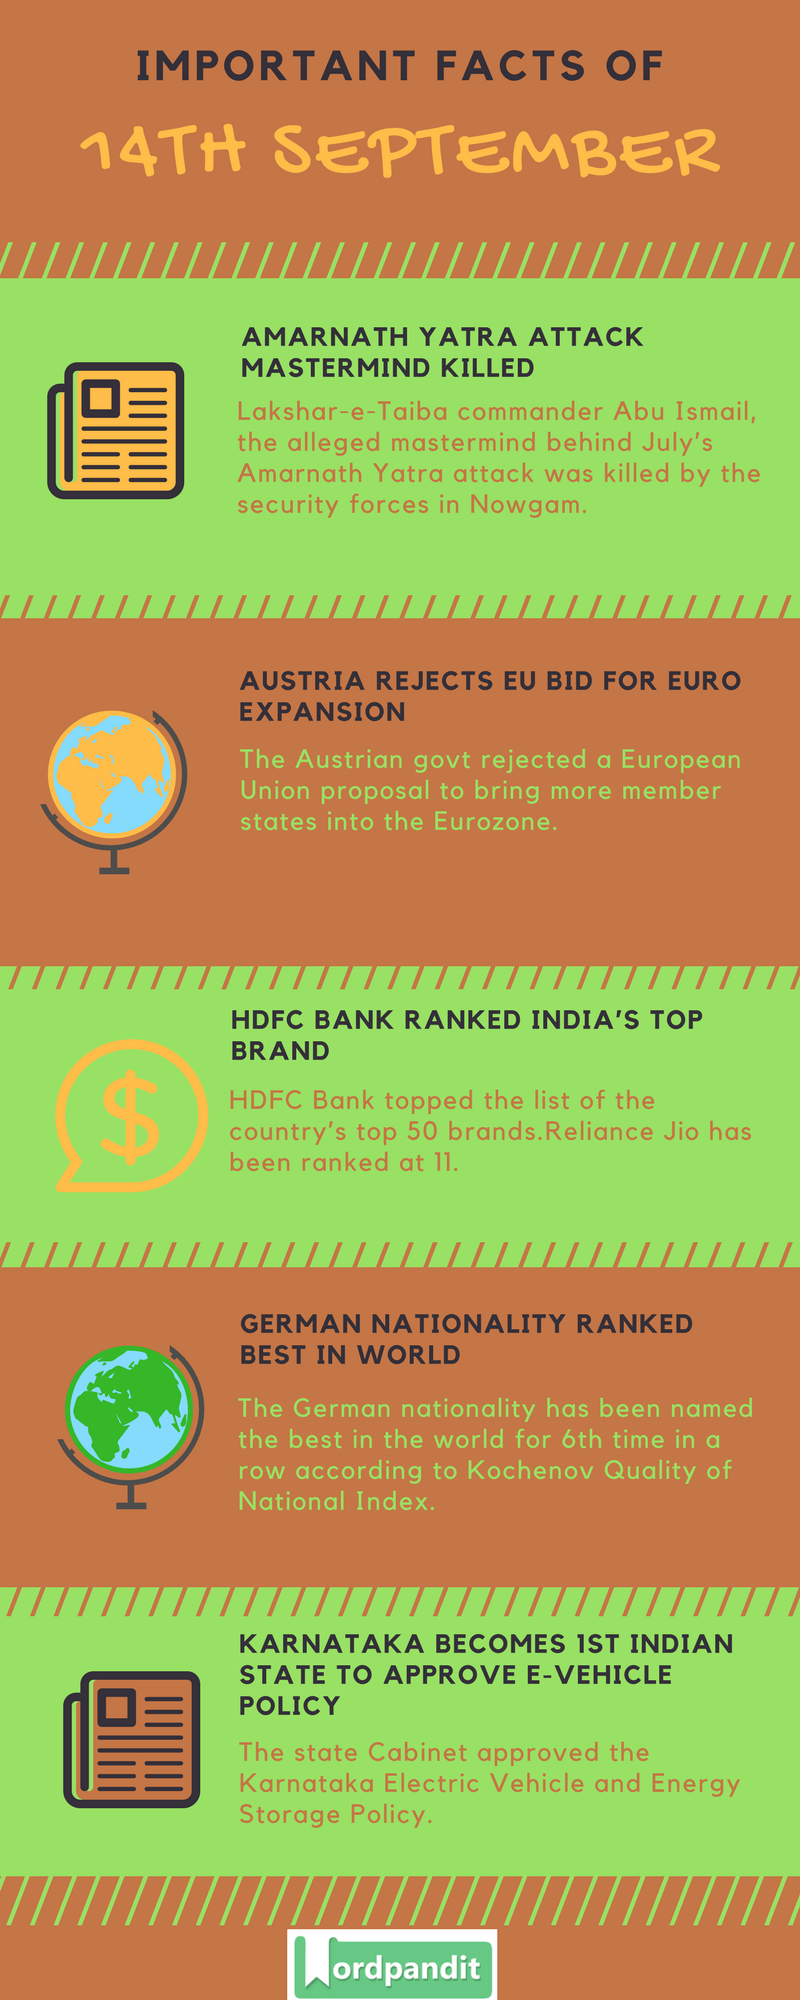 Daily-Current-Affairs-14-september-2017-Current-Affairs-Quiz-september-14-2017-Current-Affairs-Infographic